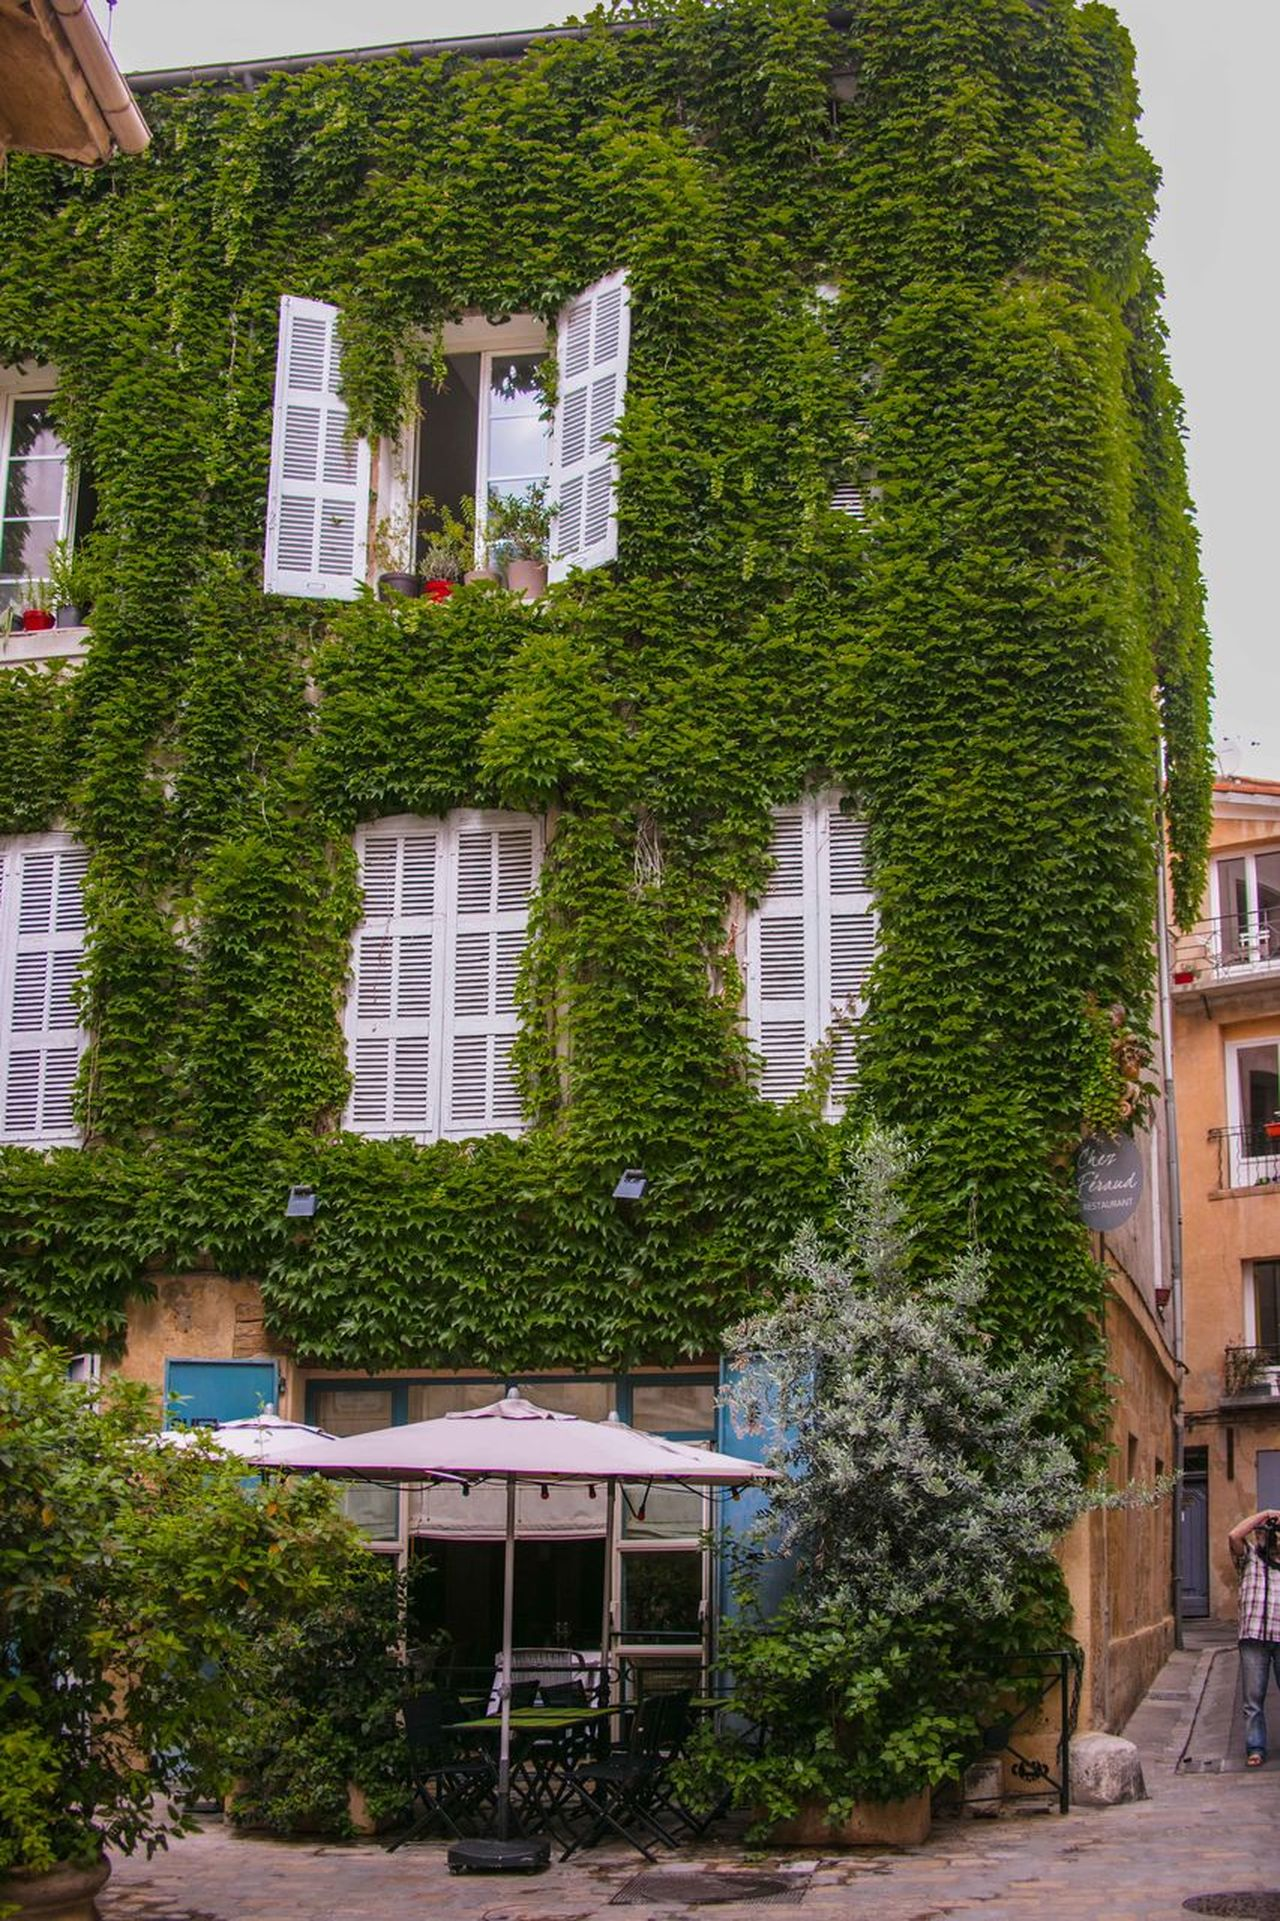 Aix En Provence Apartment Architecture Building Exterior Built Structure City Day France Green Color House No People Outdoors Provence Residential Building Tree